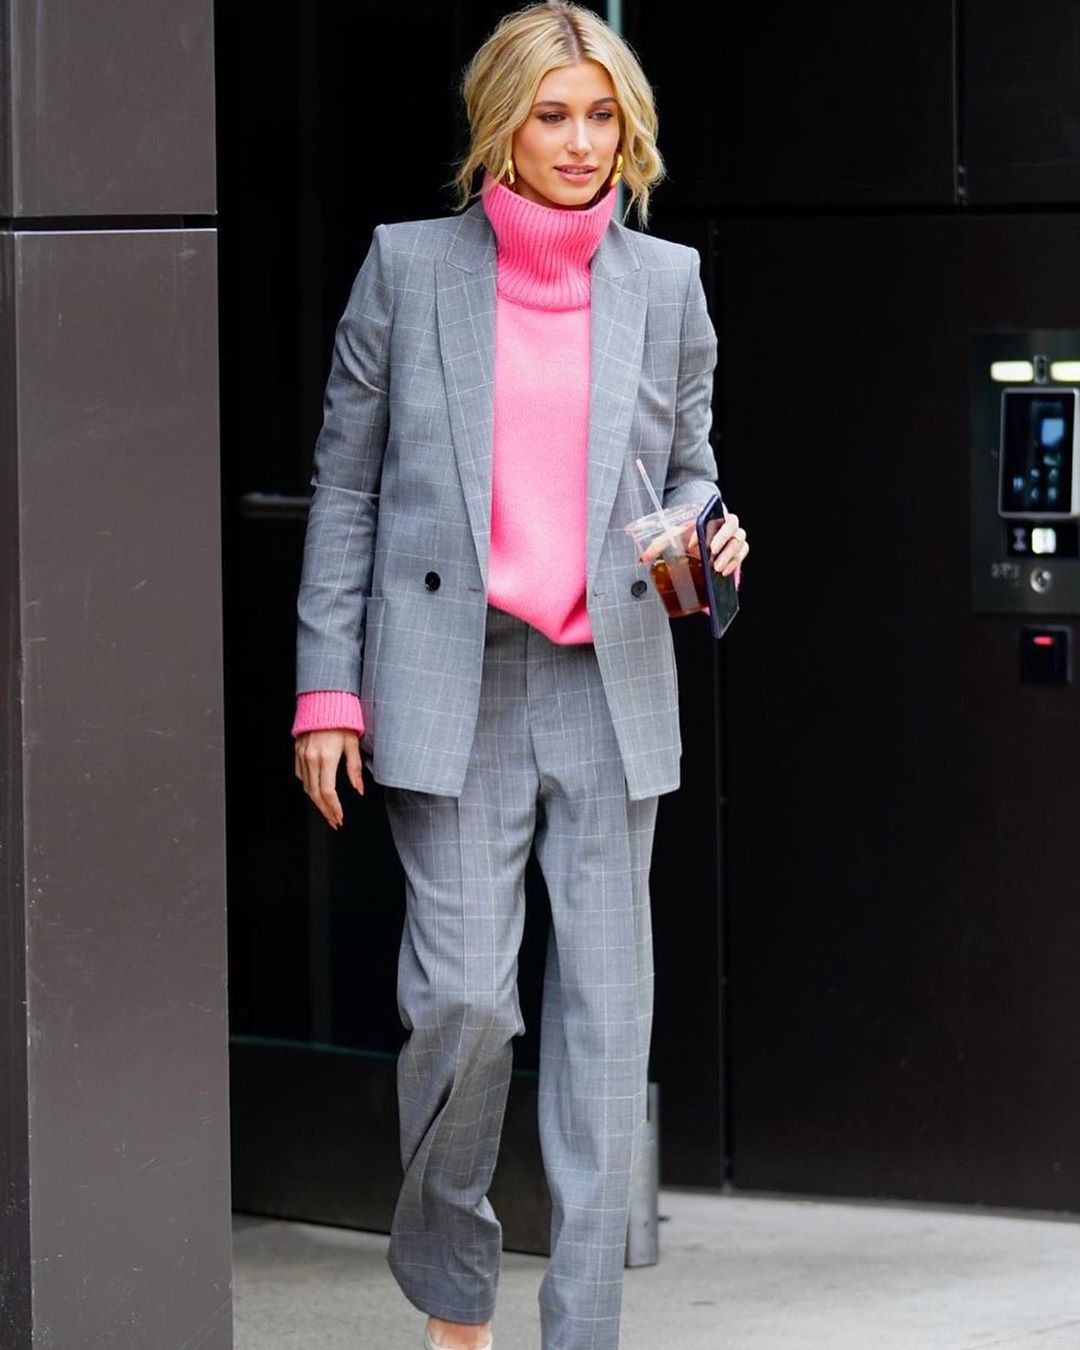 16 Sweaters That Add a Pop of Color to Your Outfit — Hailey Bieber Style